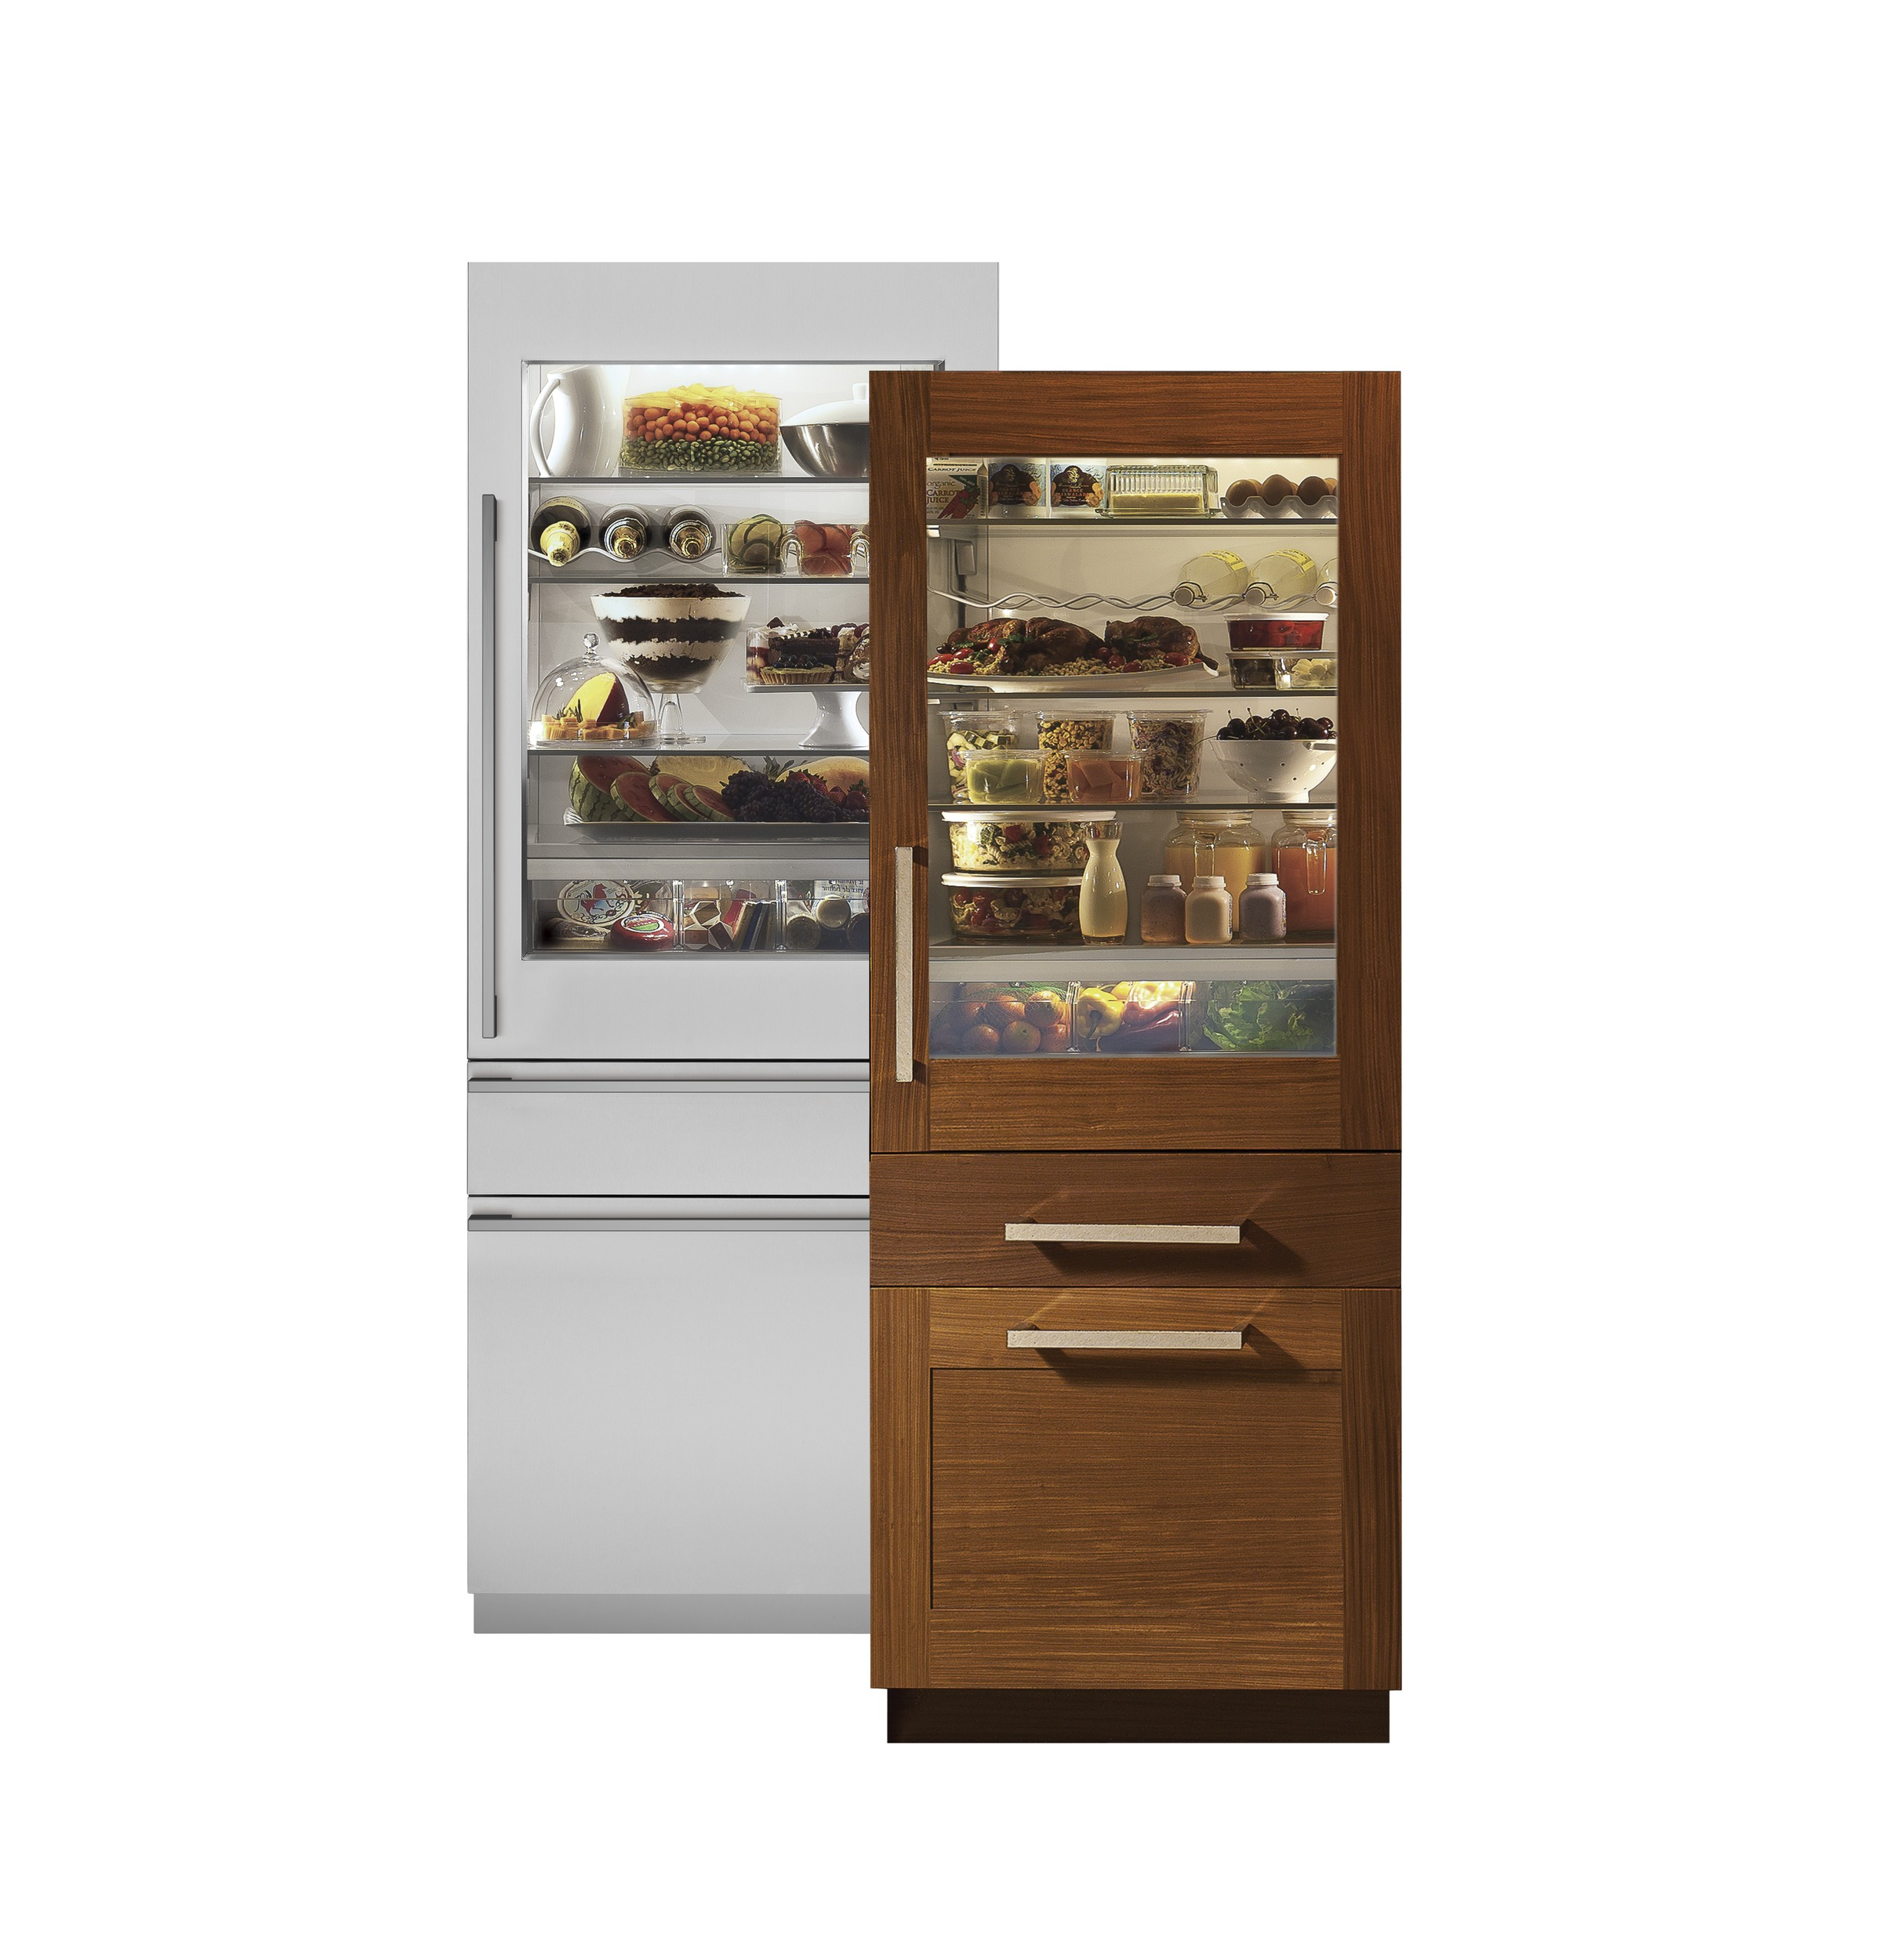 "Monogram Monogram 30"" Integrated Glass-Door Refrigerator for Single or Dual Installation"